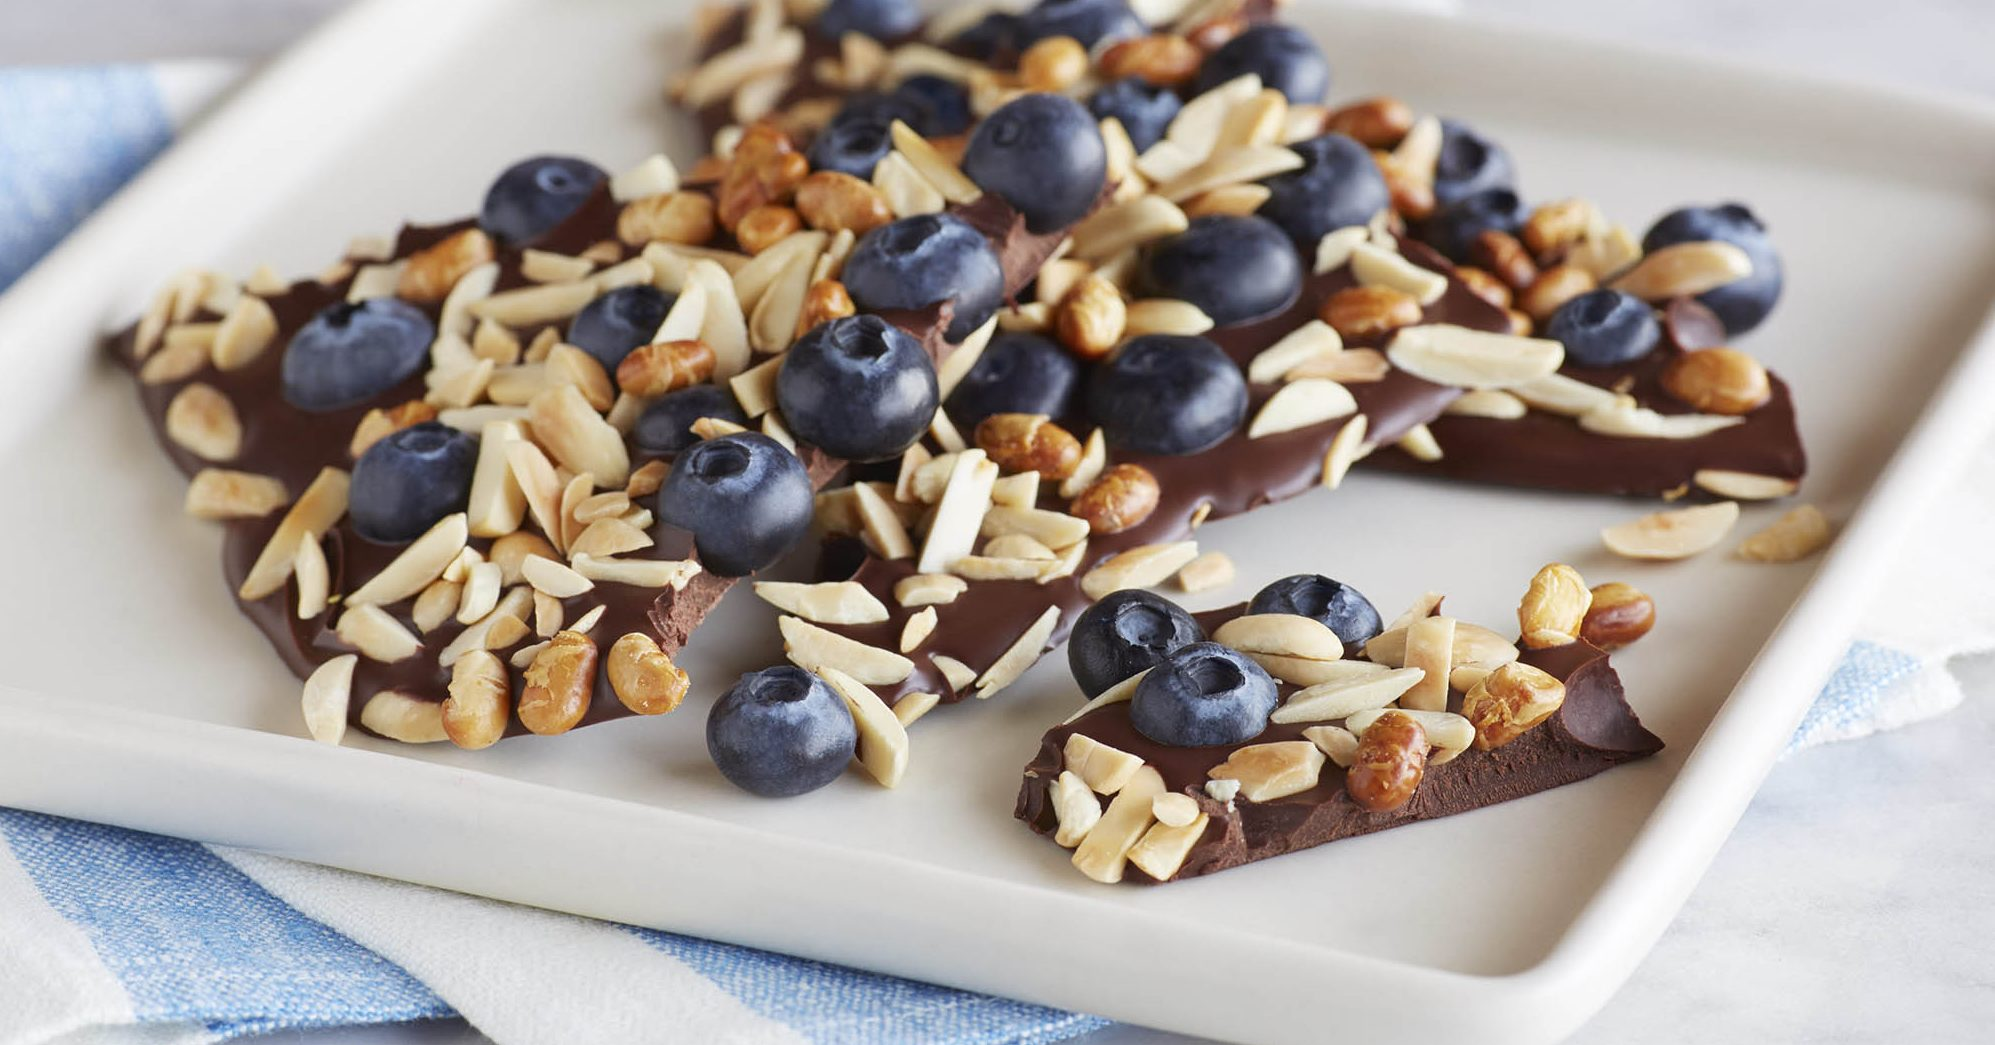 Blueberry Recipes For A Healthy Christmas